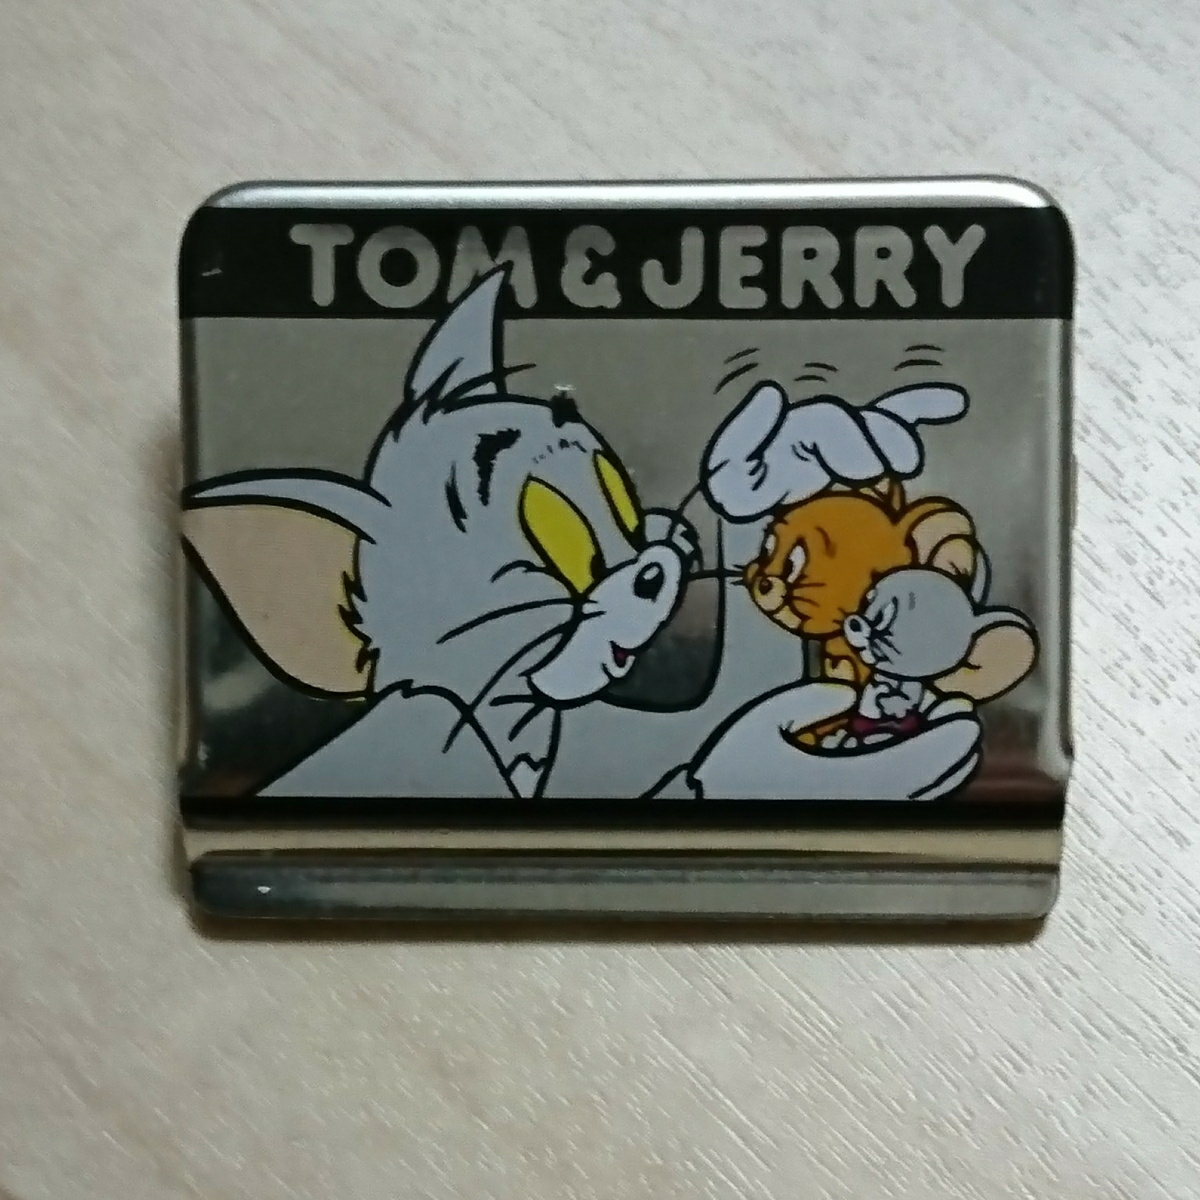 ■『Tom&jerry クリップ』1個。金属製。■裏面「Tom&jerry They are Best friends」と有ります。_画像1